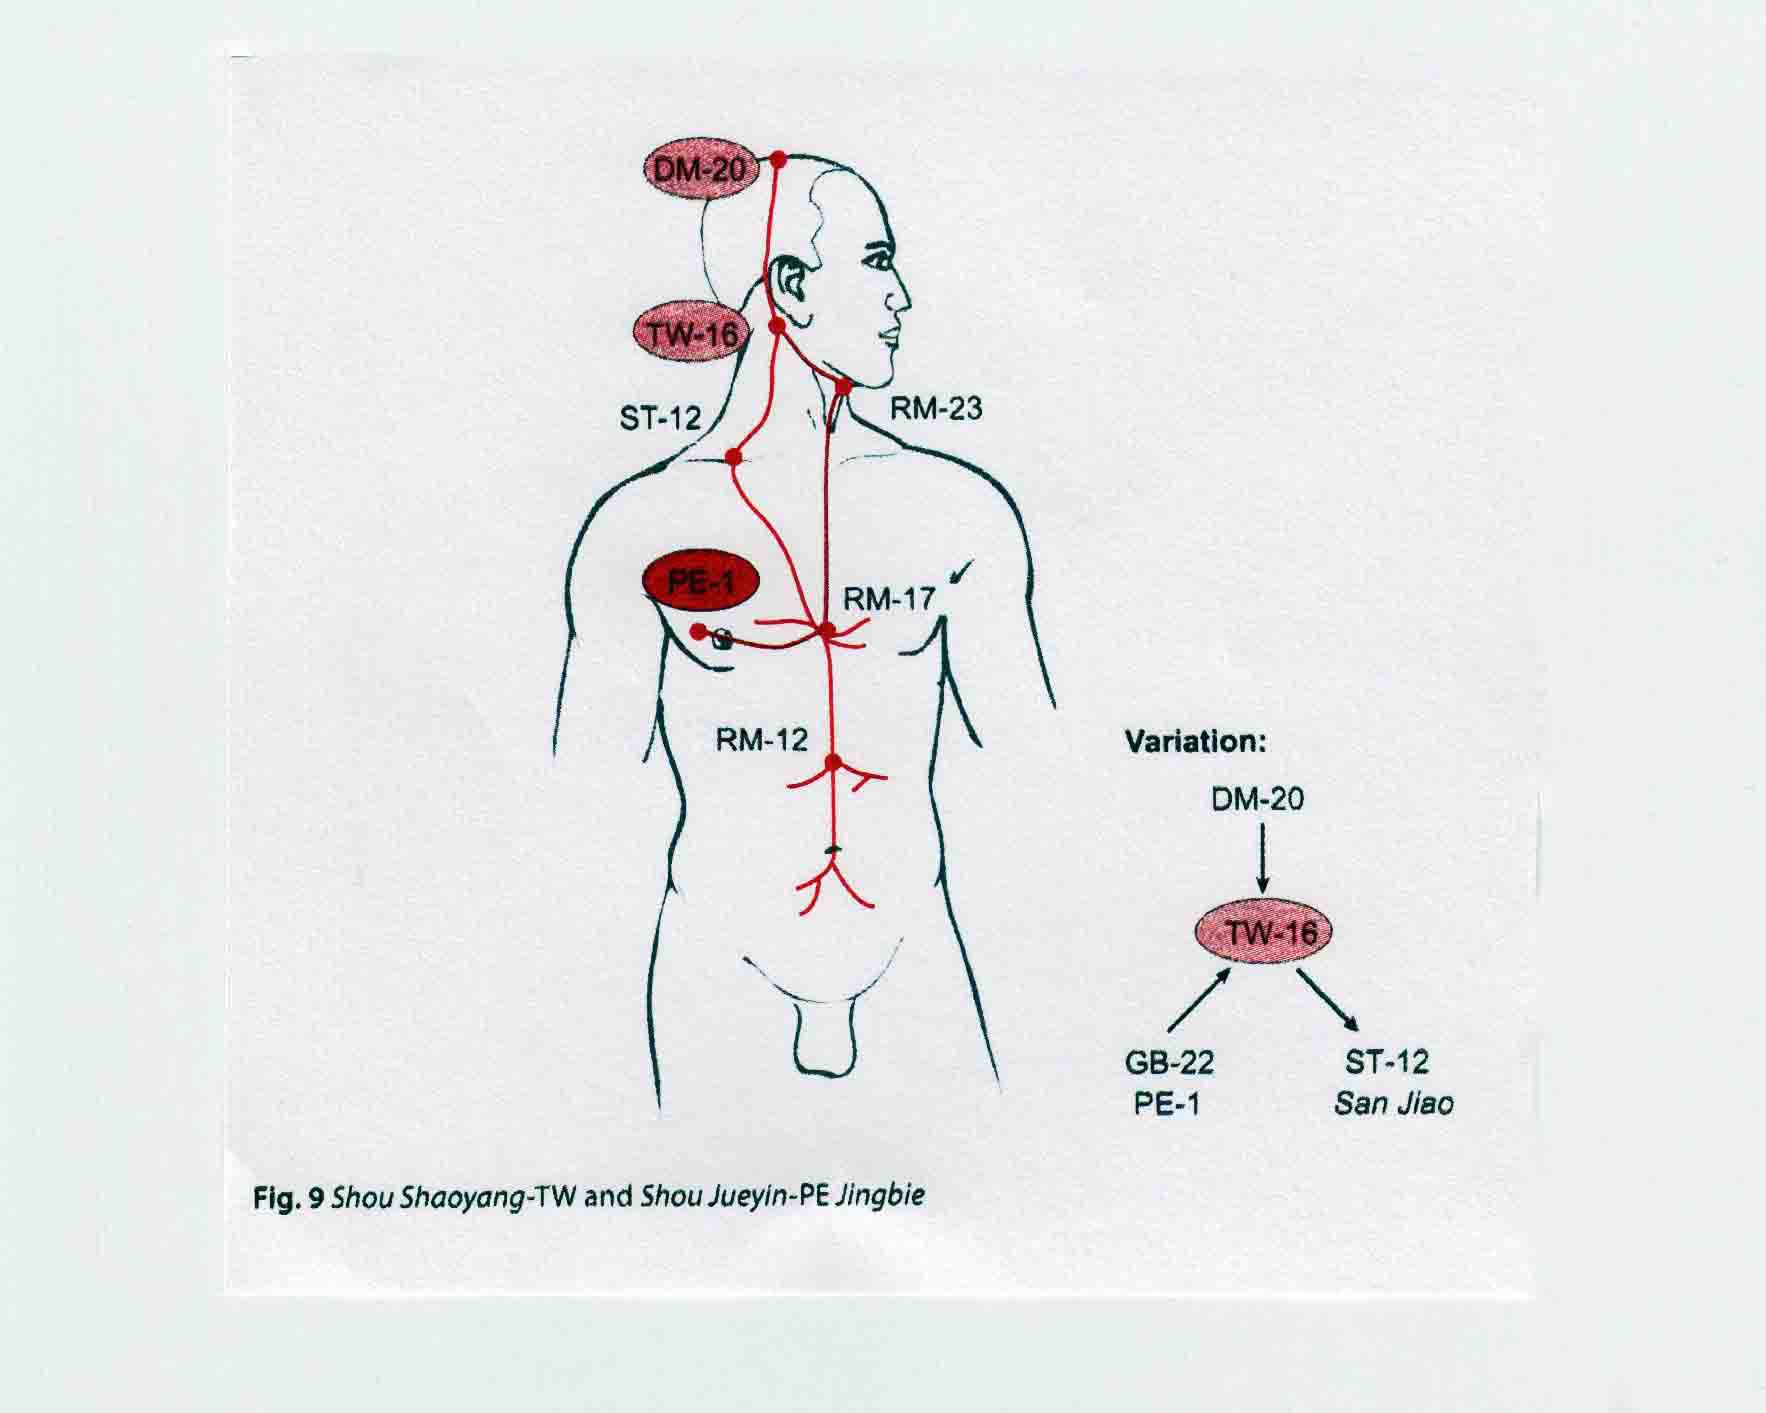 The 3-Level Acupuncture Balance: Part 4 - More on the Divergent